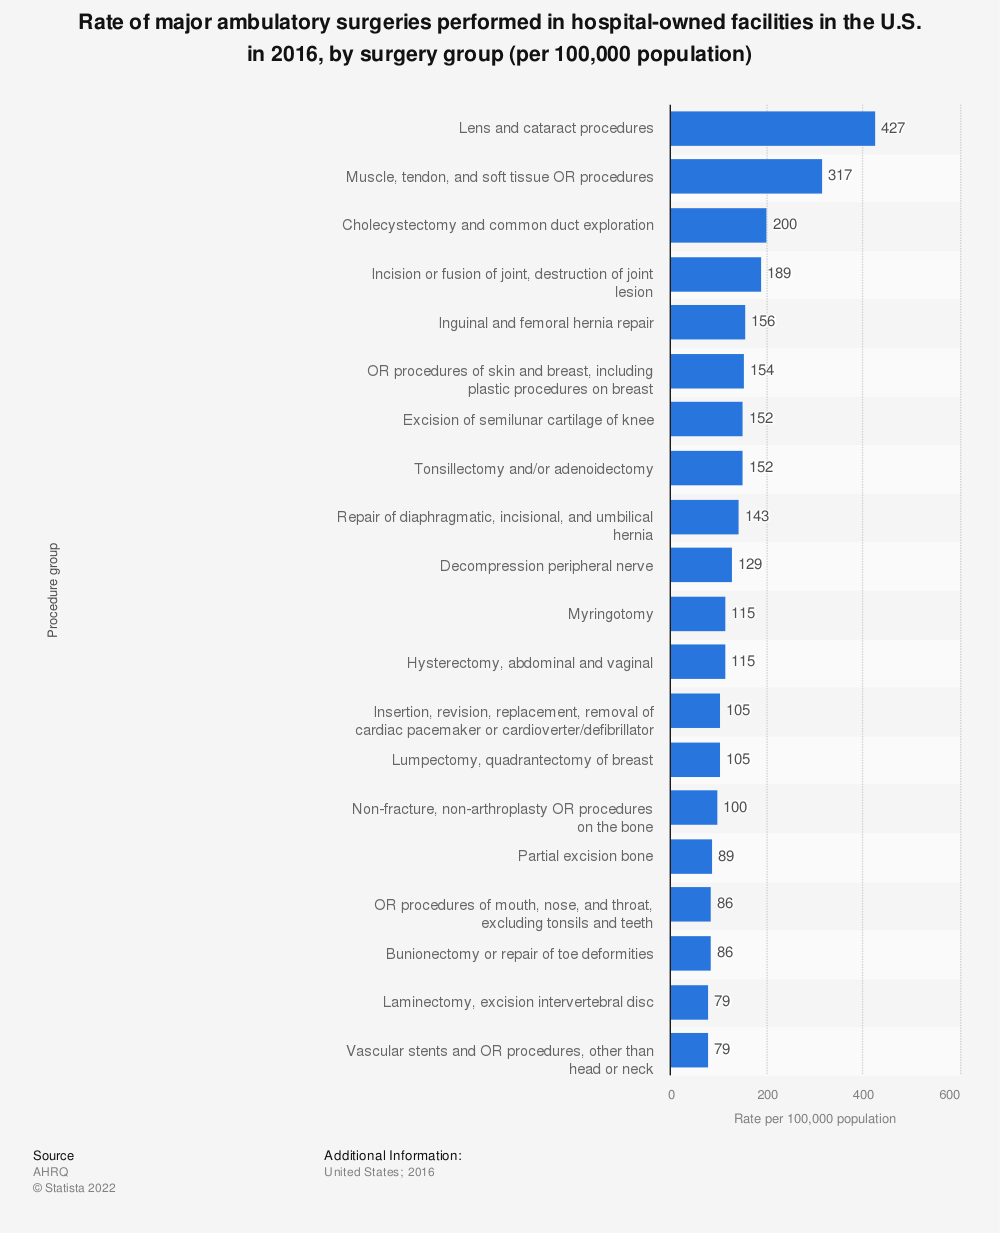 Statistic: Rate of major ambulatory surgeries performed in hospital-owned facilities in the U.S. in 2016, by surgery group (per 100,000 population) | Statista